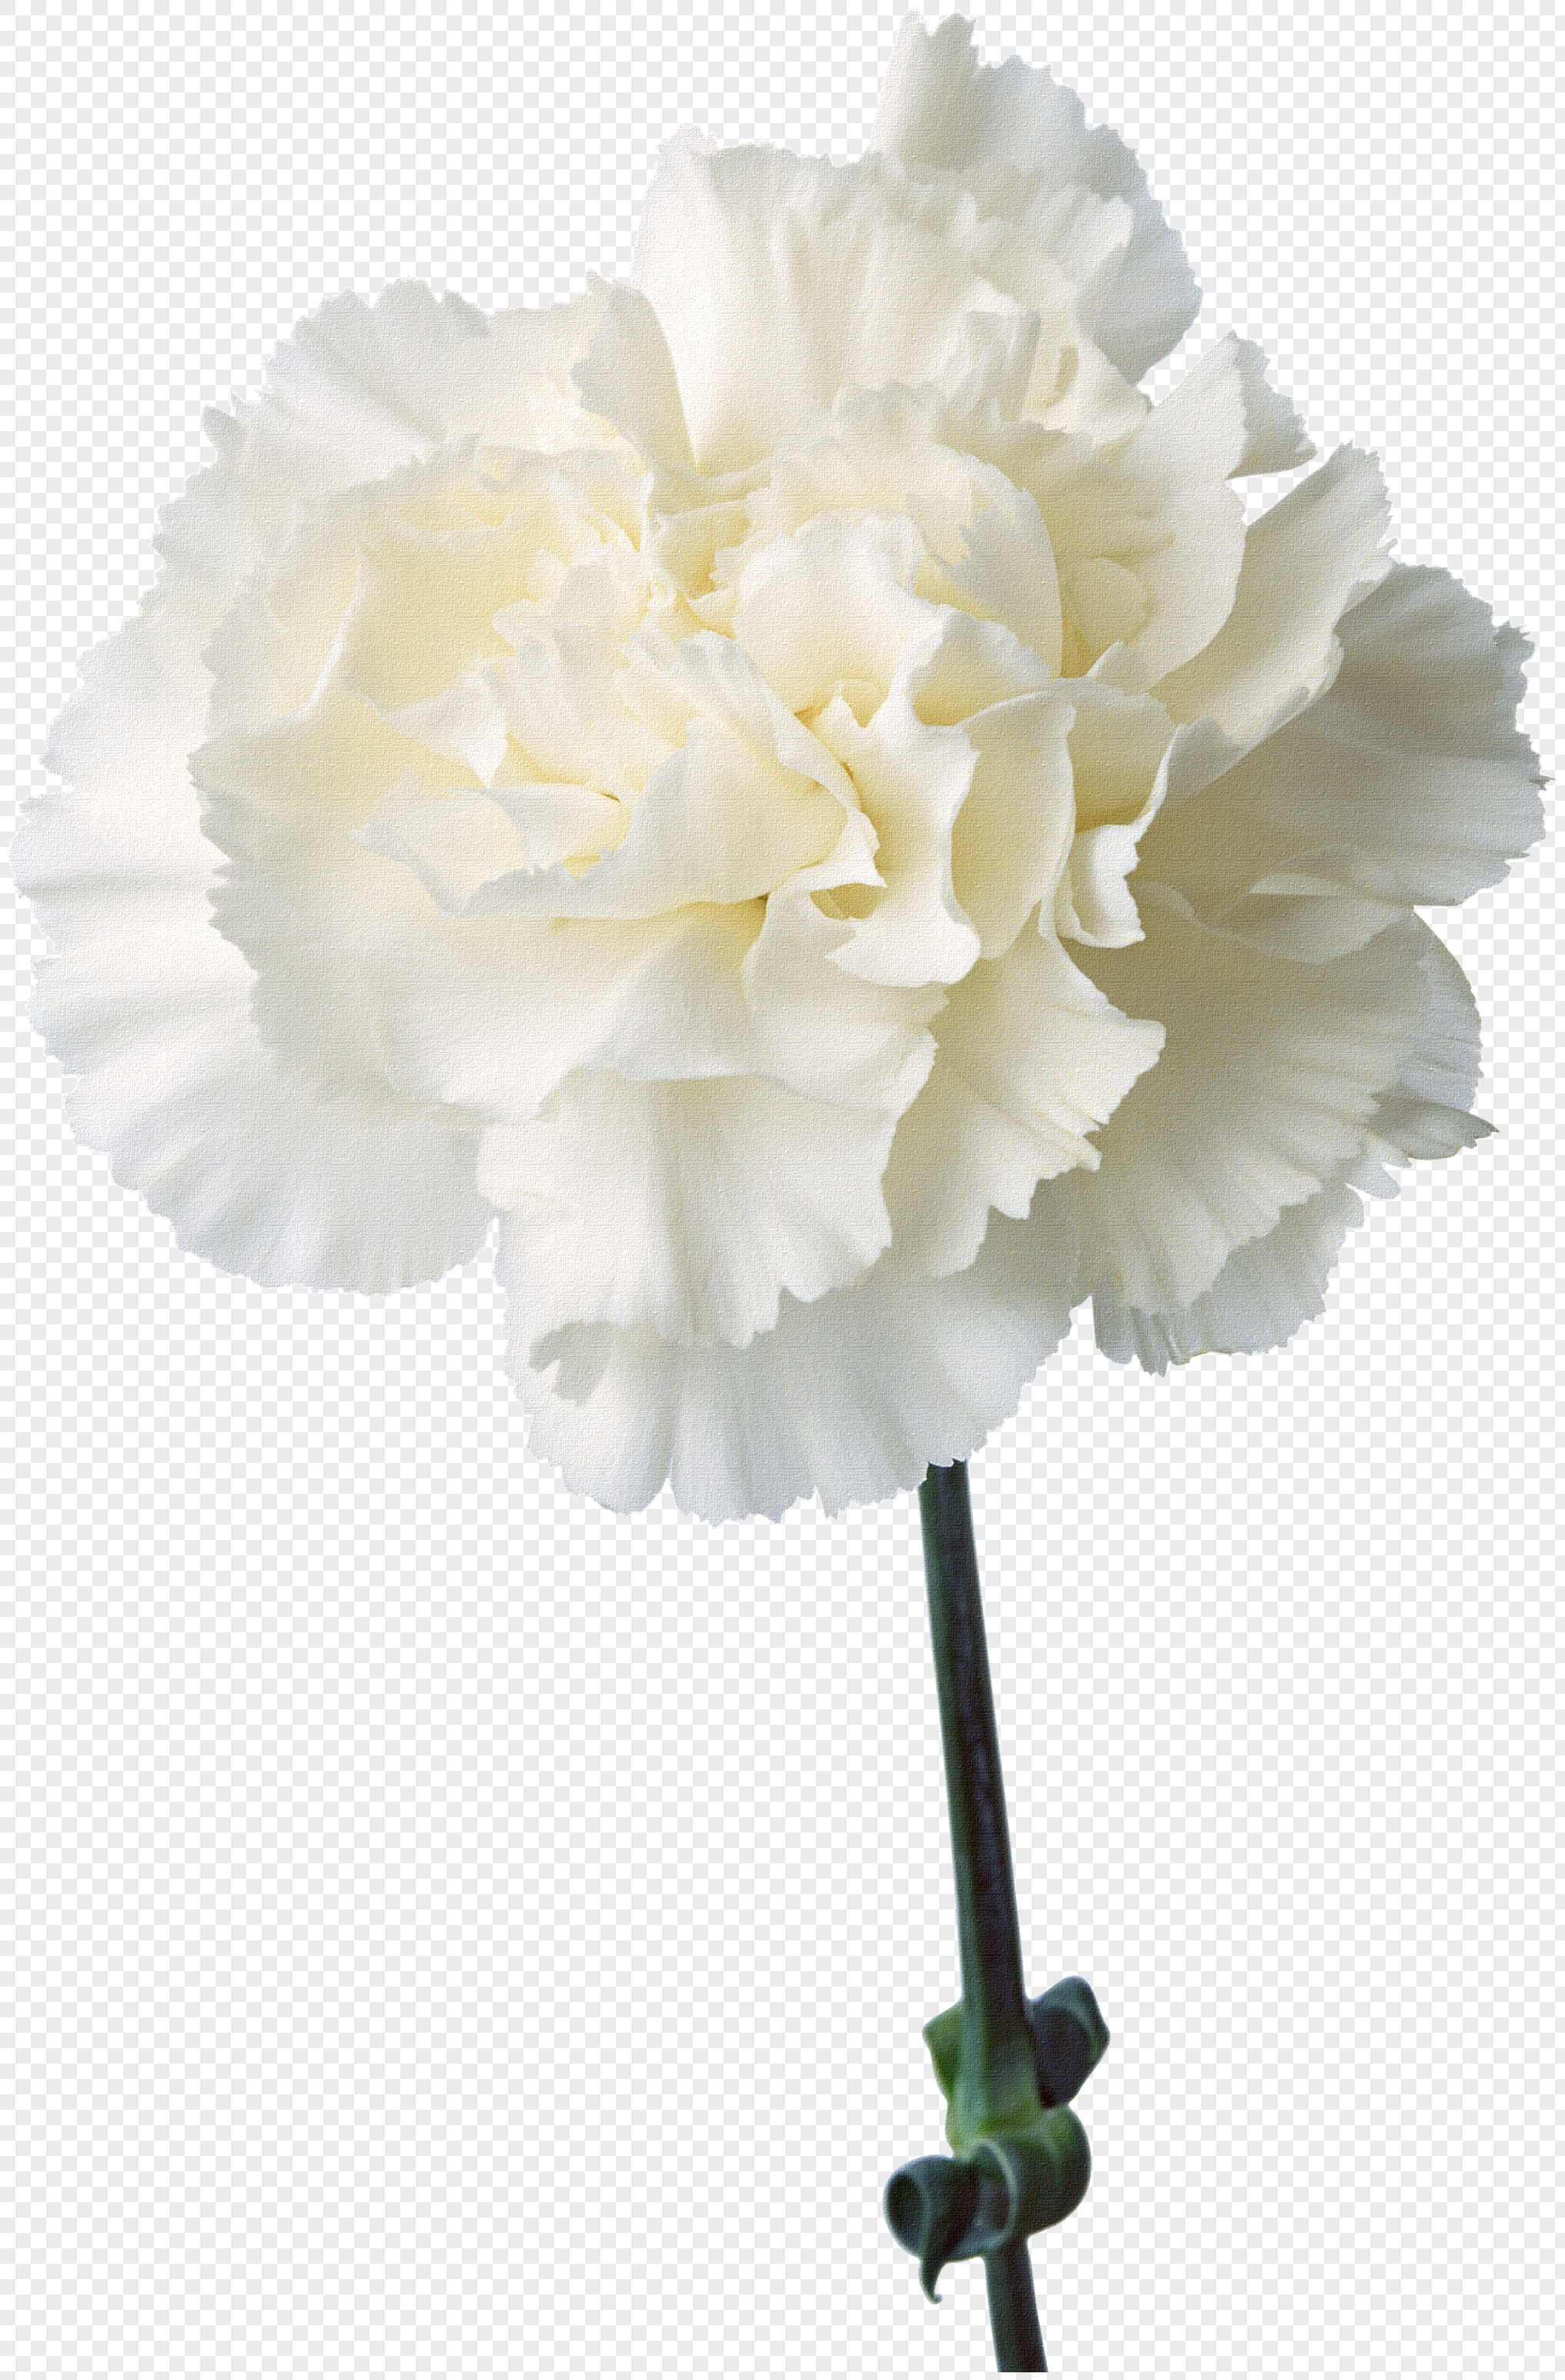 Flower Pattern Flower Element White Carnation Png Imagepicture Free